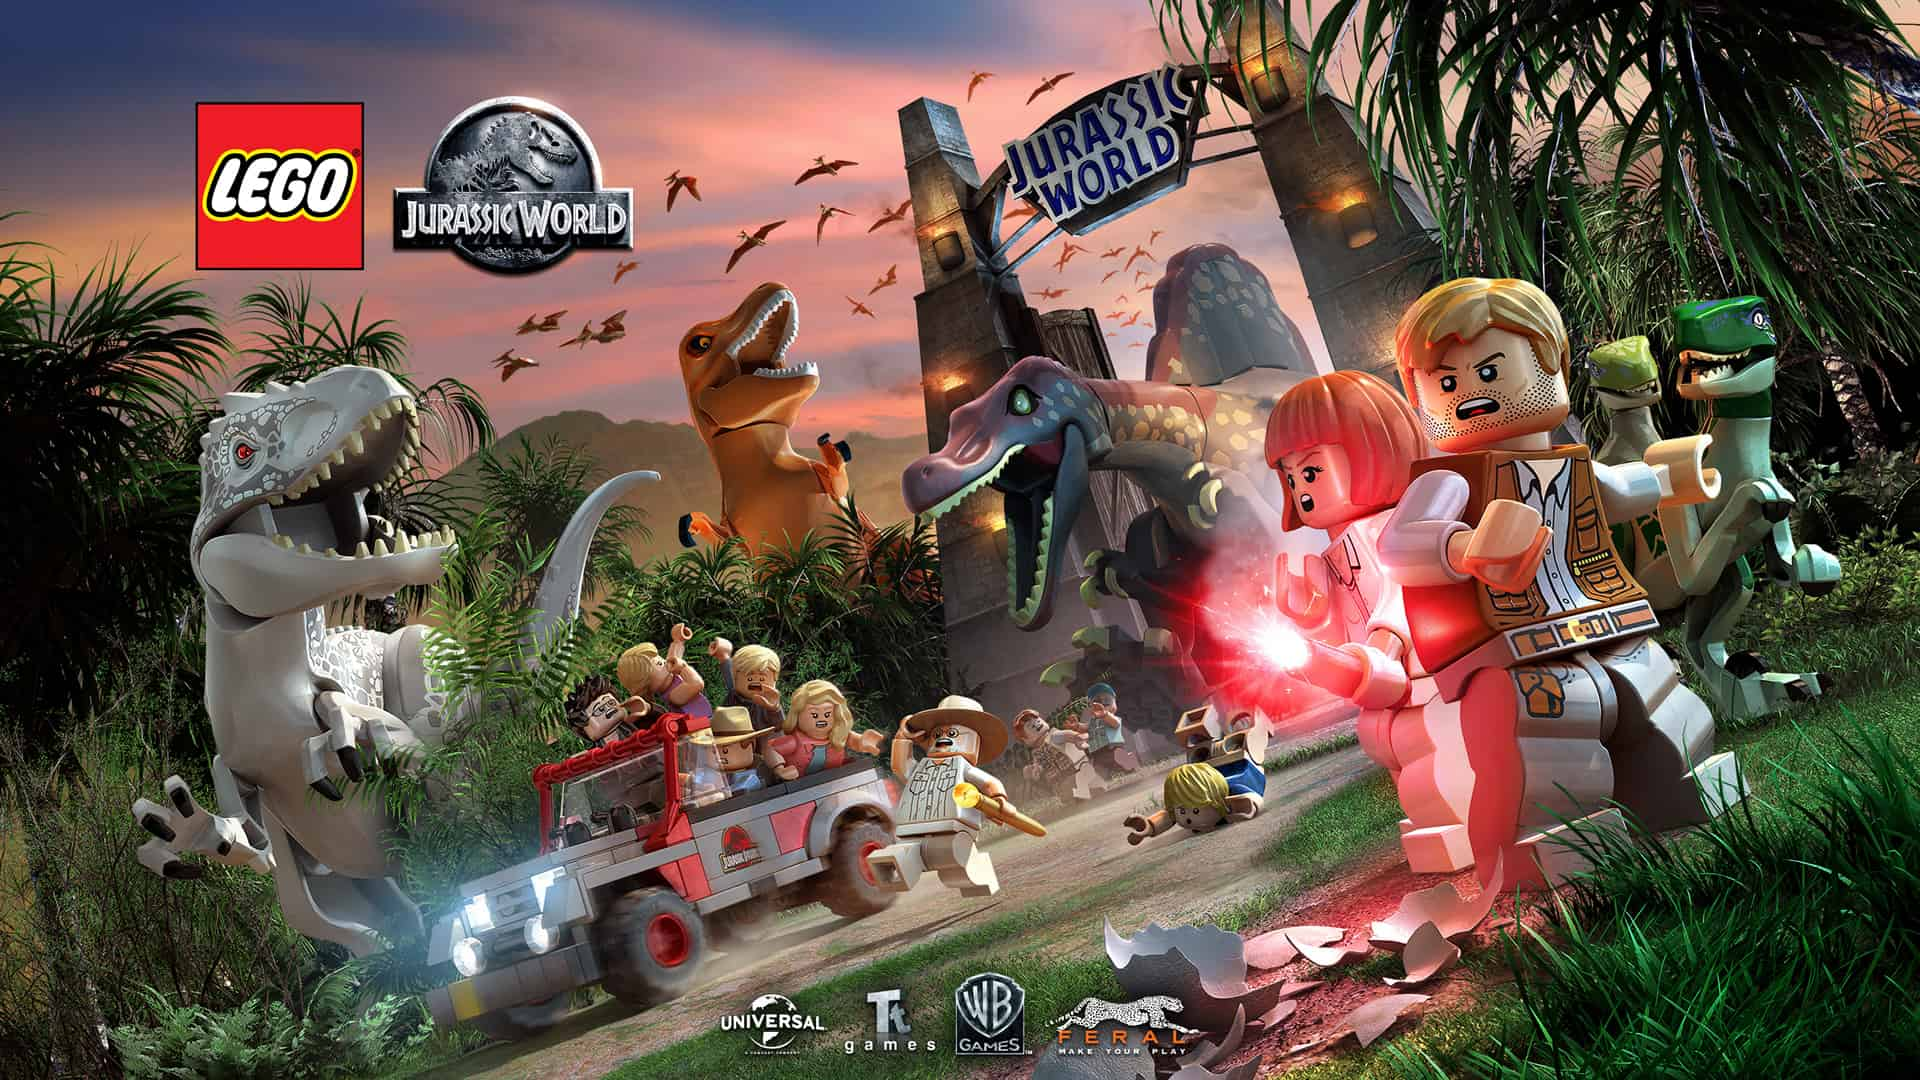 LEGO Jurassic World Out Now For Nintendo Switch